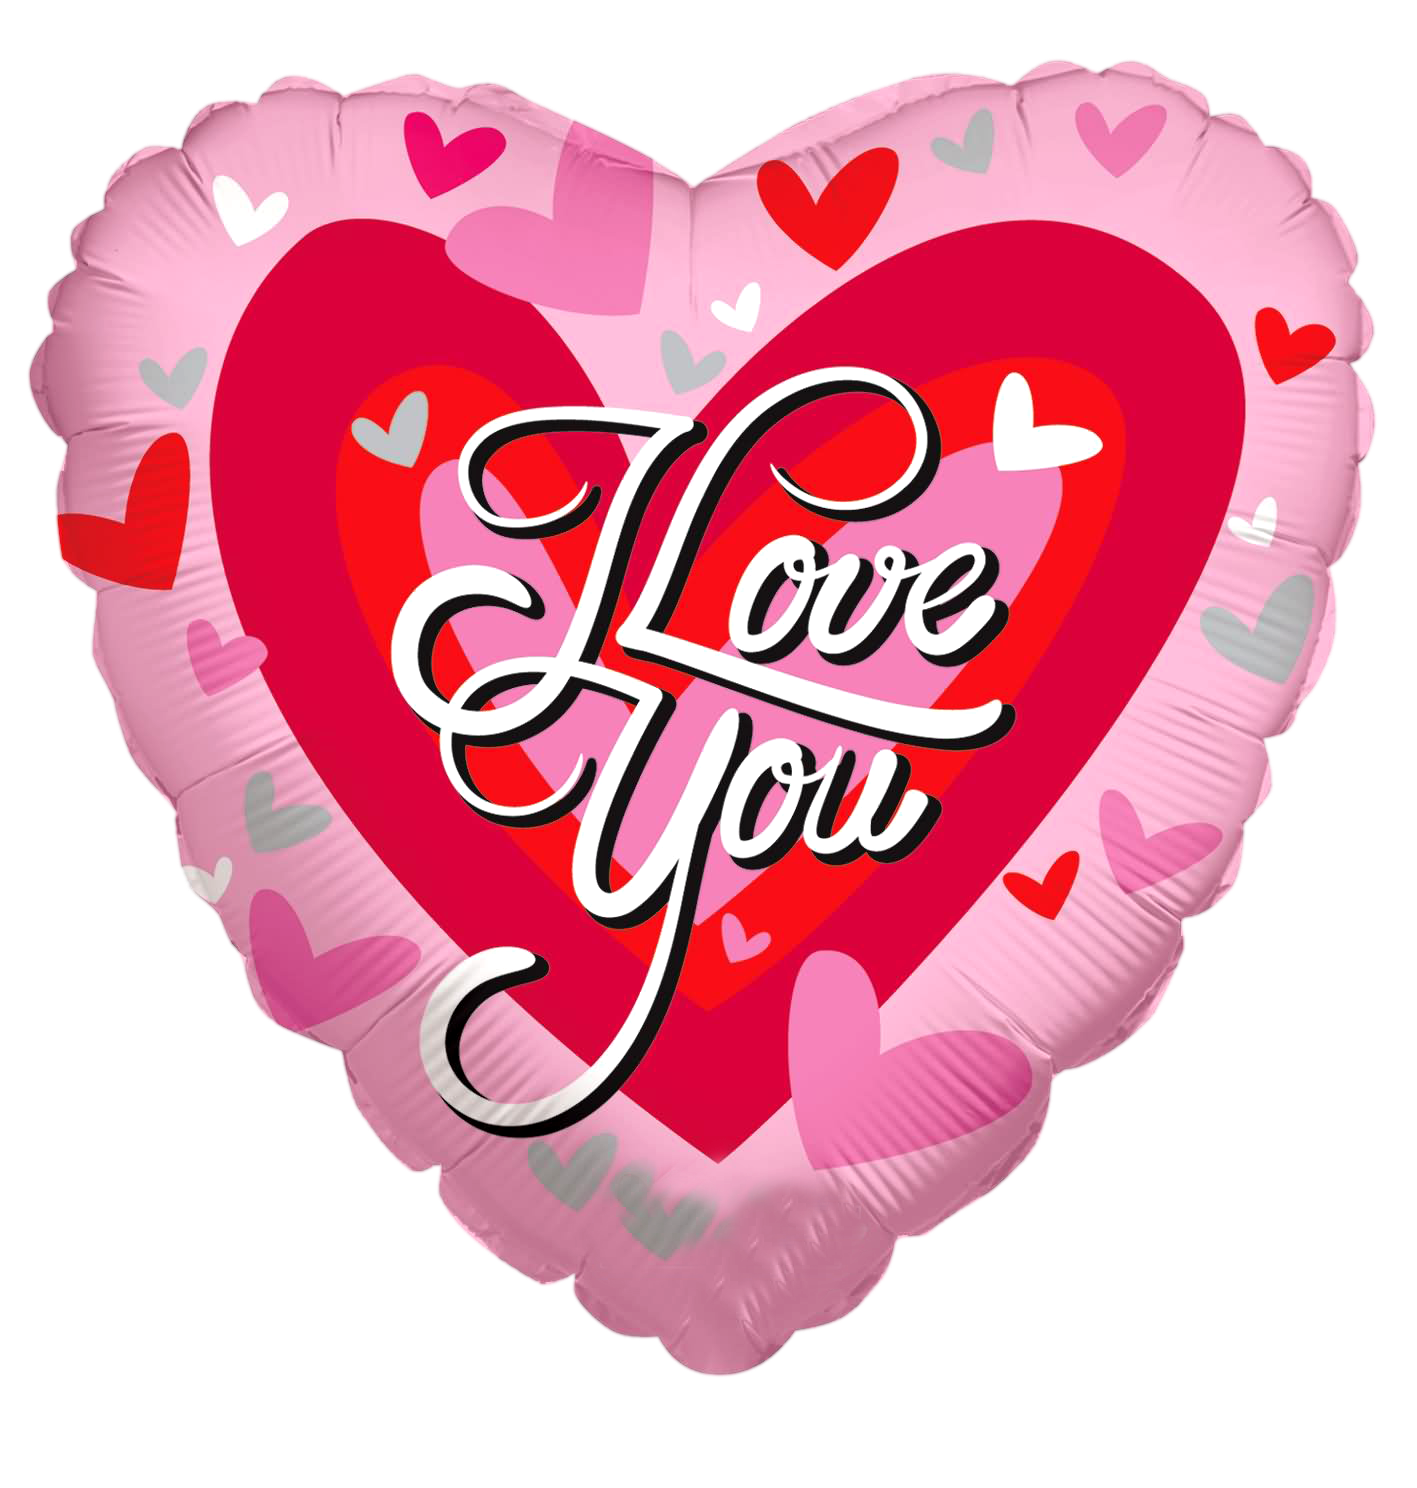 Heat clipart love hearts. Heart png images and